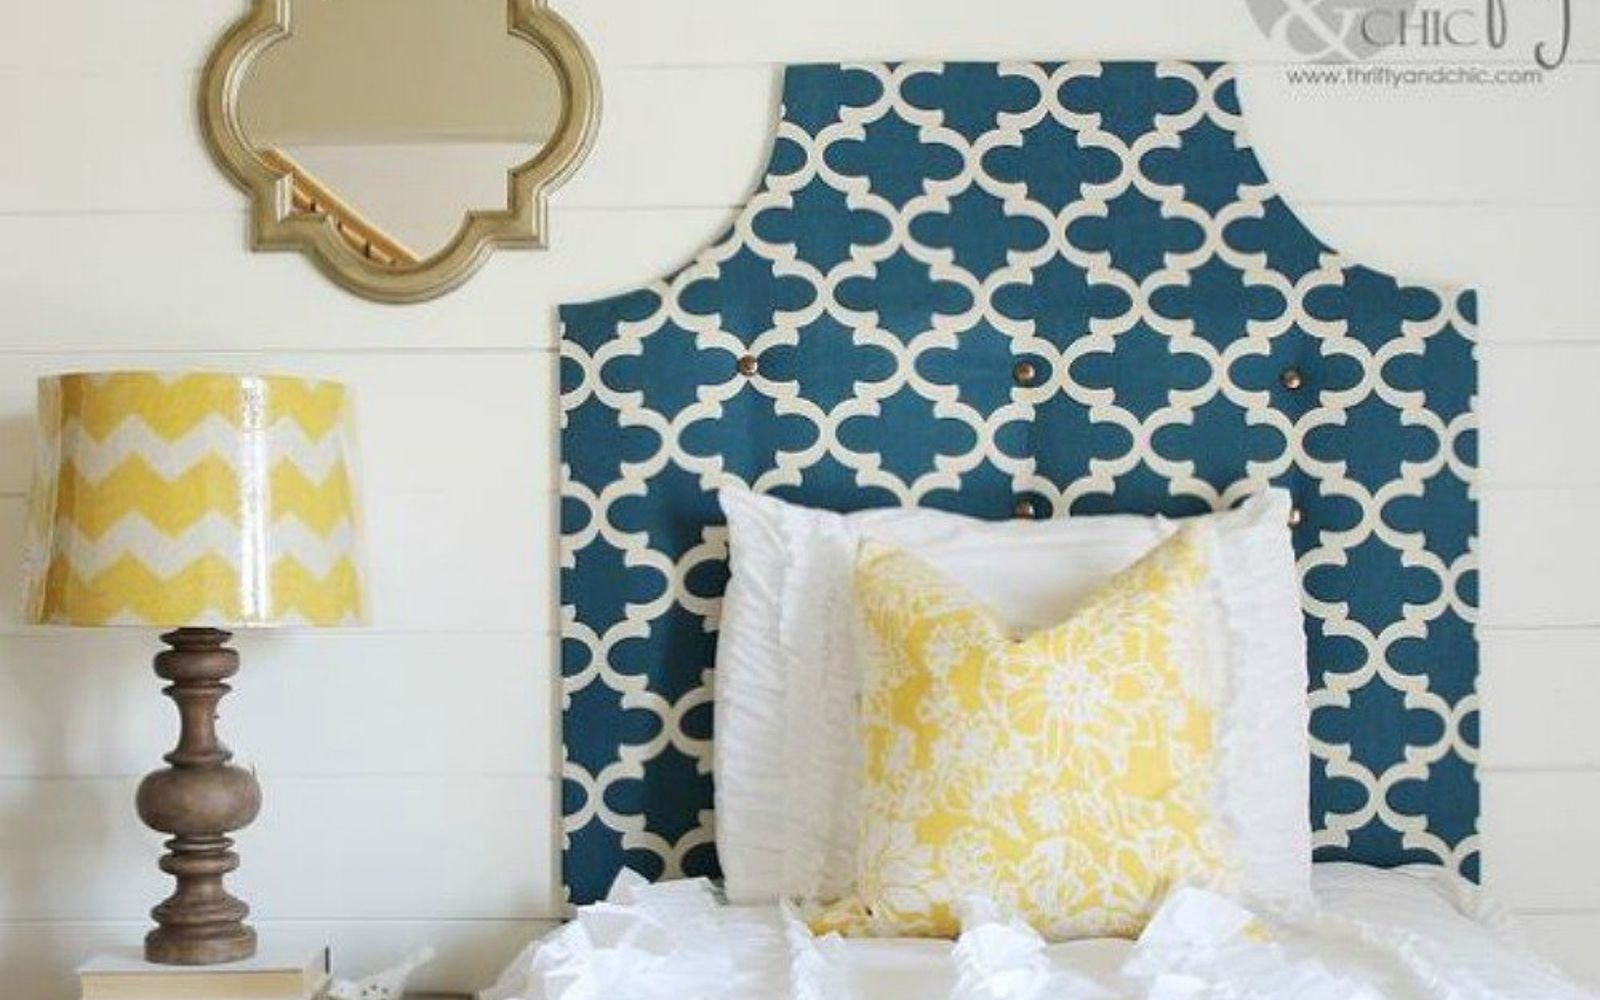 s these are the diy headboard ideas you ve been dreaming of, This budget friendly gem